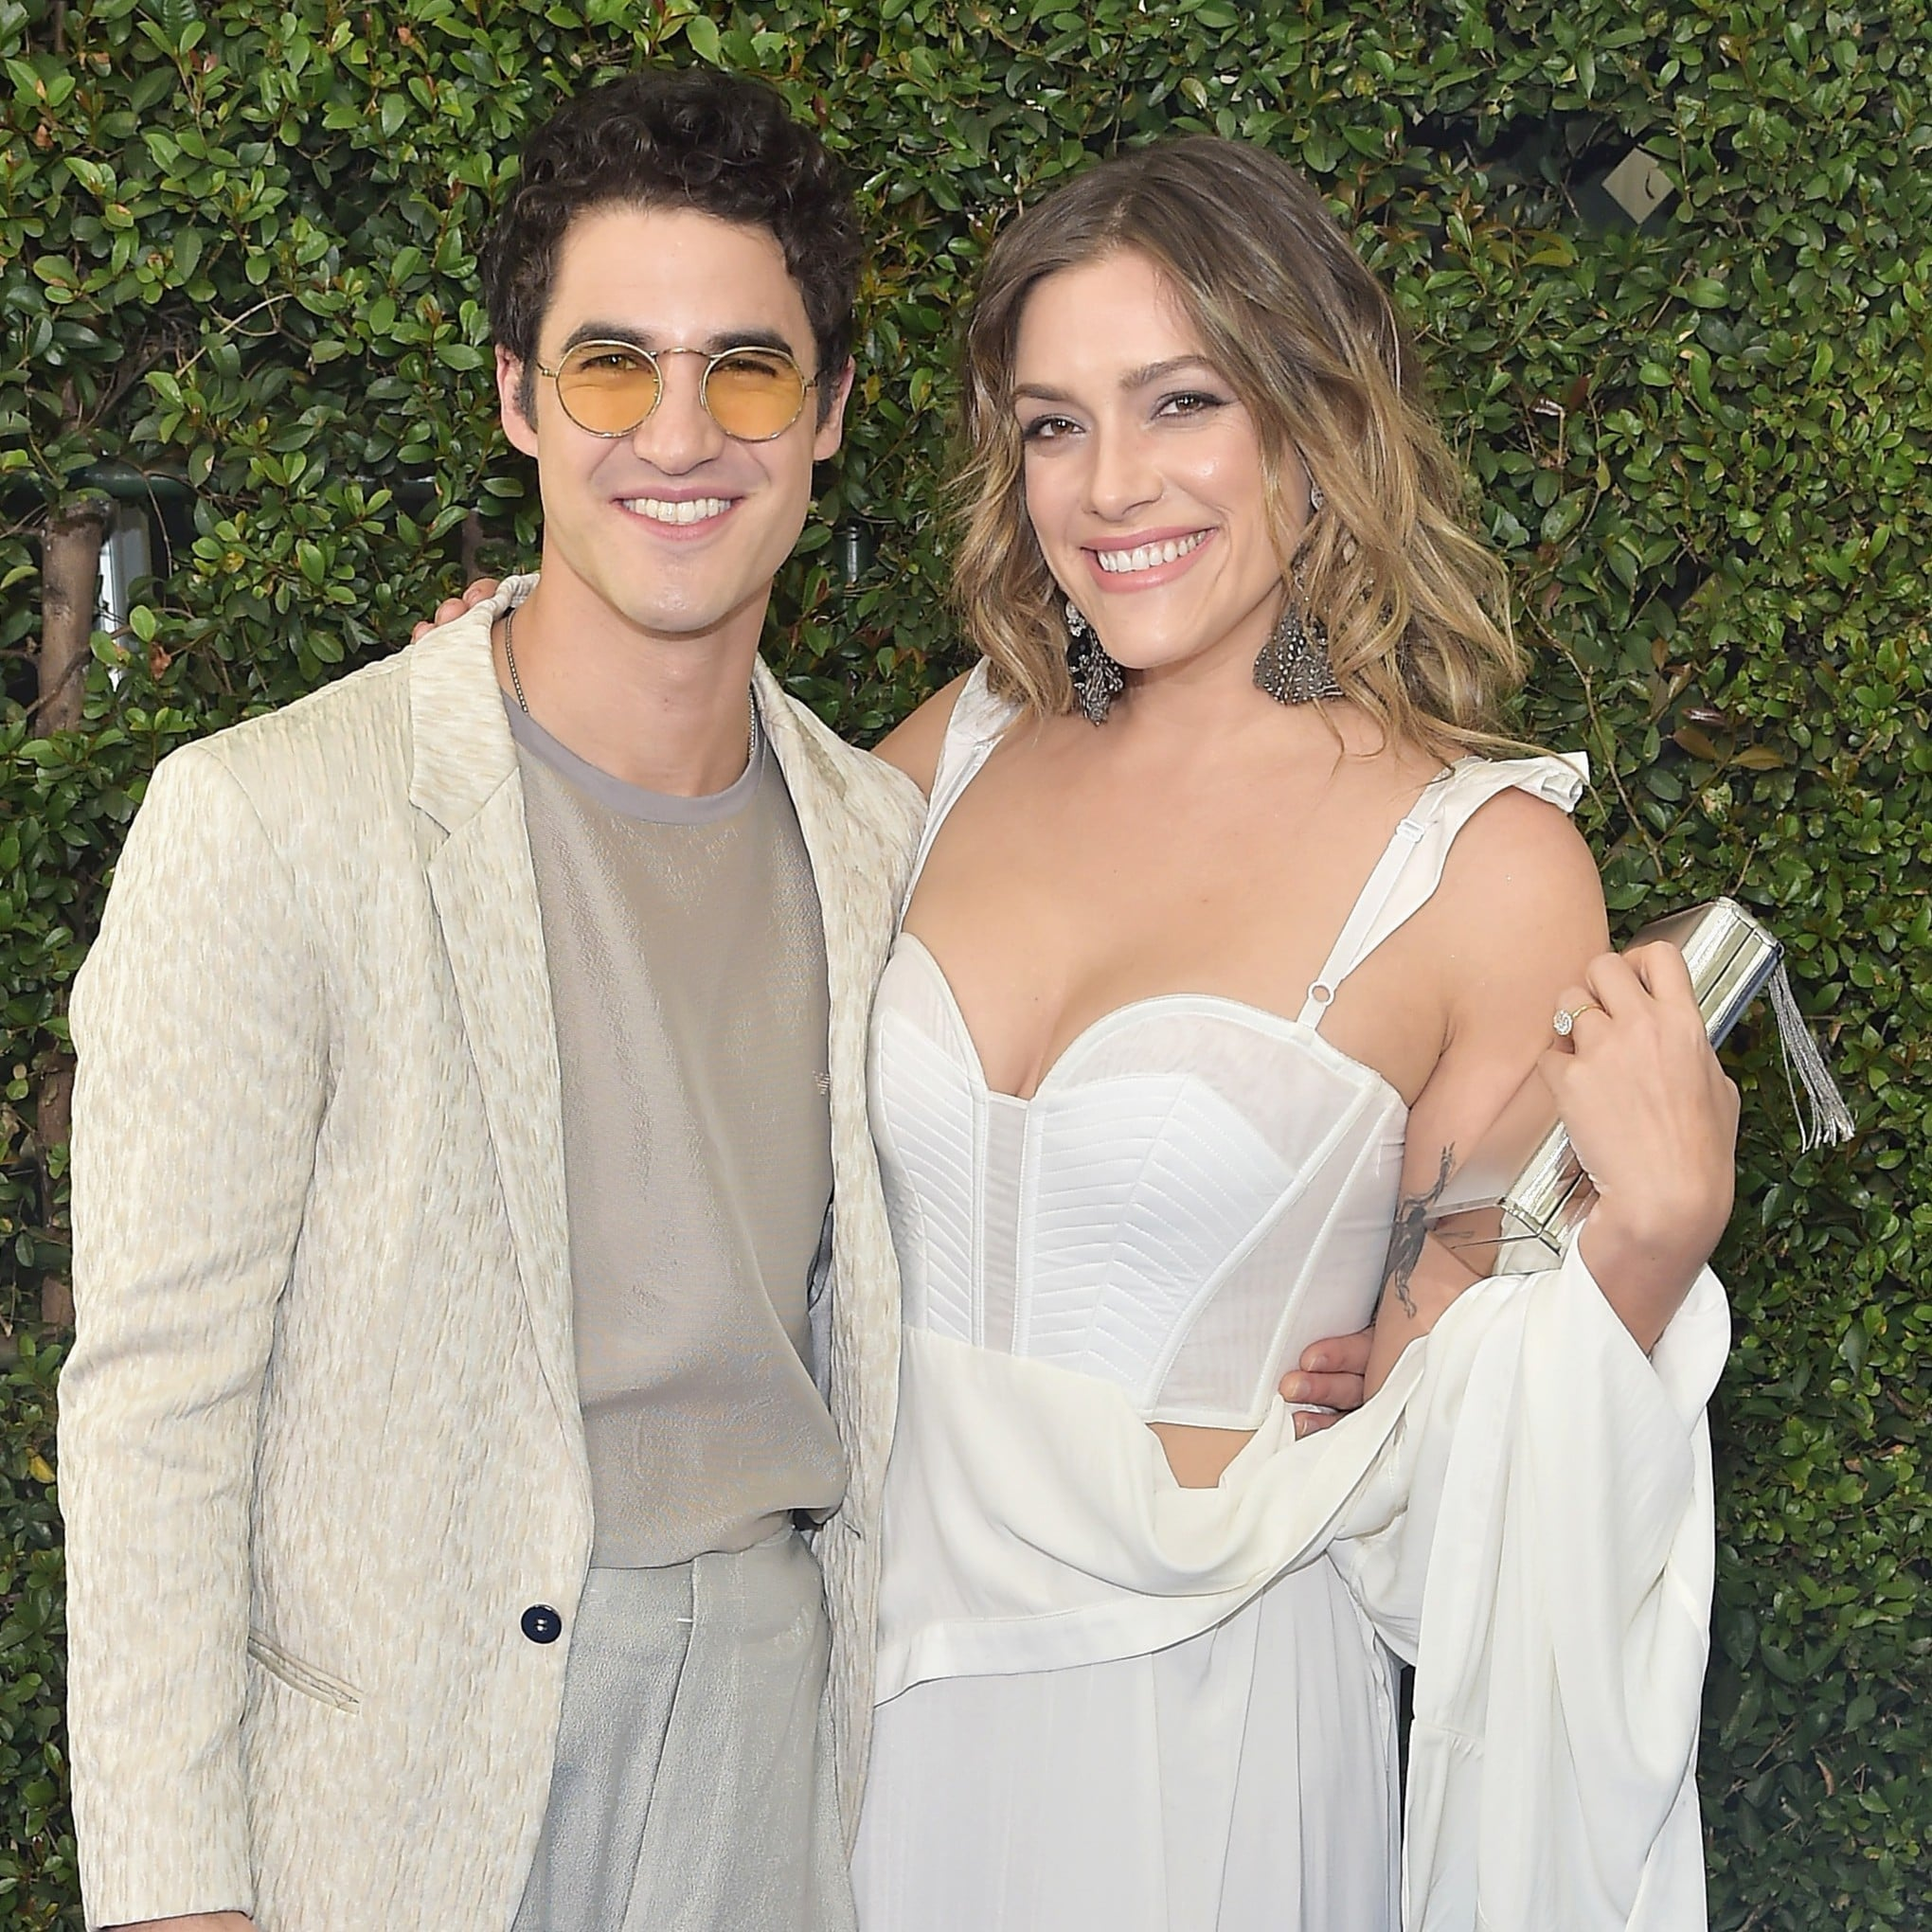 Darren Criss and His Longtime Girlfriend Mia Swier Are Married!